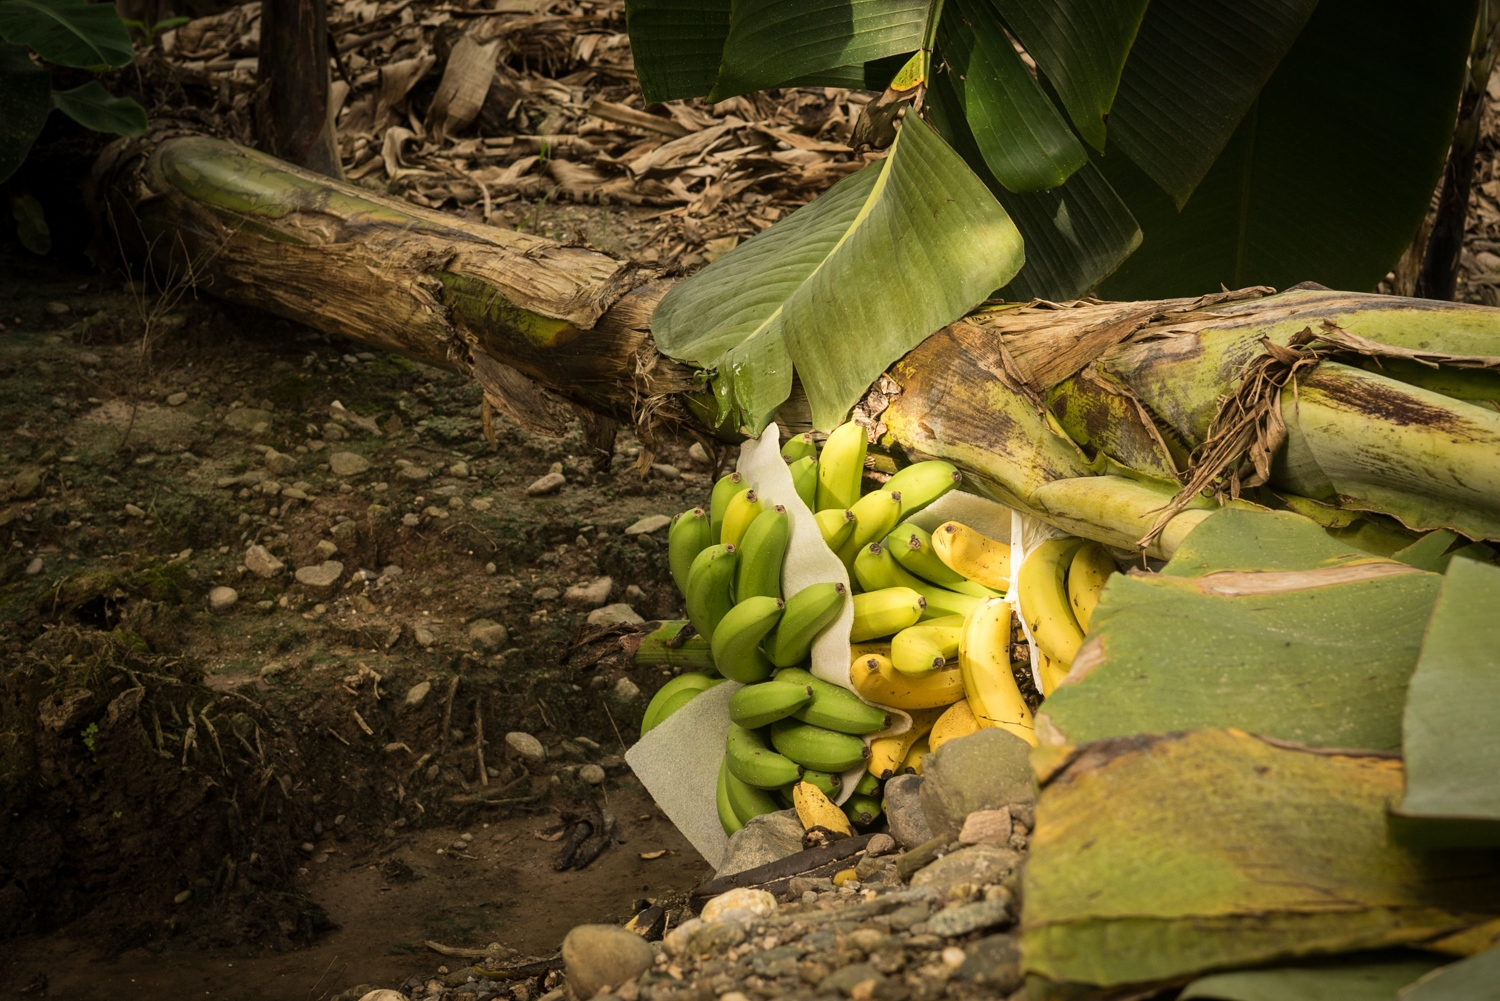 A fallen banana tree in a Chiquita International farm in La Lima, Honduras. The strike that Gómez helped organize lasted over two months and lead to $10 million in production losses. Workers believe it will take at least a year for the fields to return to their natural state. In 2016, 89% of Honduran banana exports ended up in the U.S..